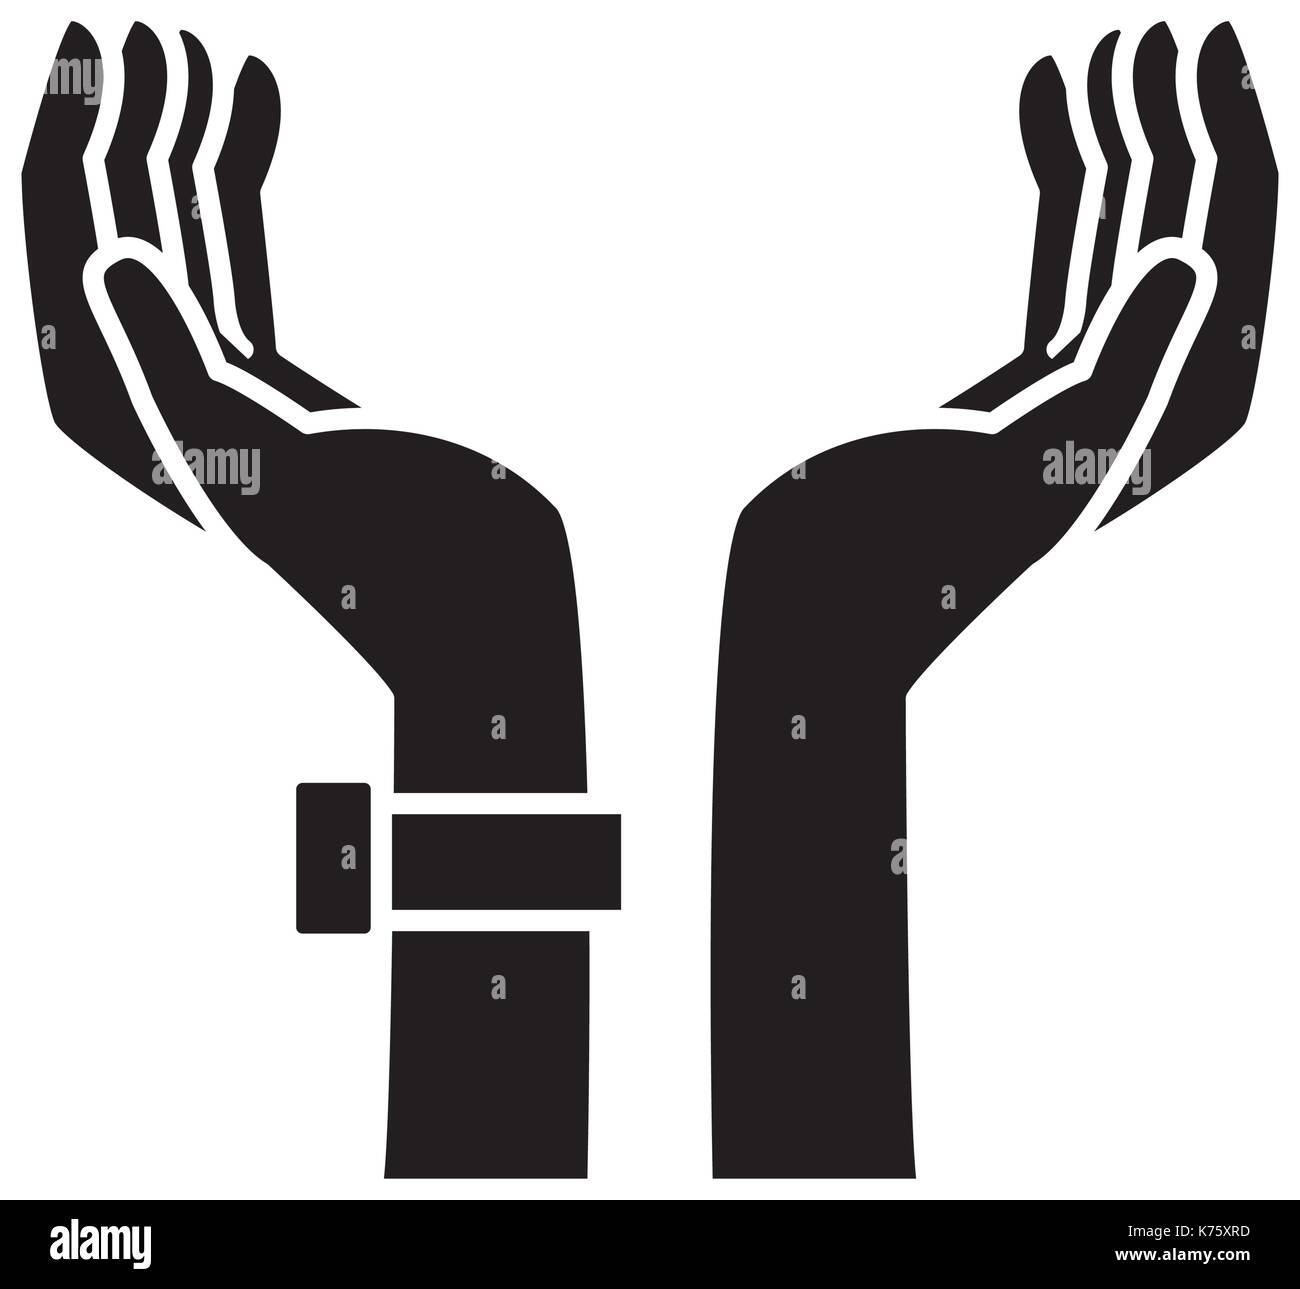 Hand holding something - Stock Image